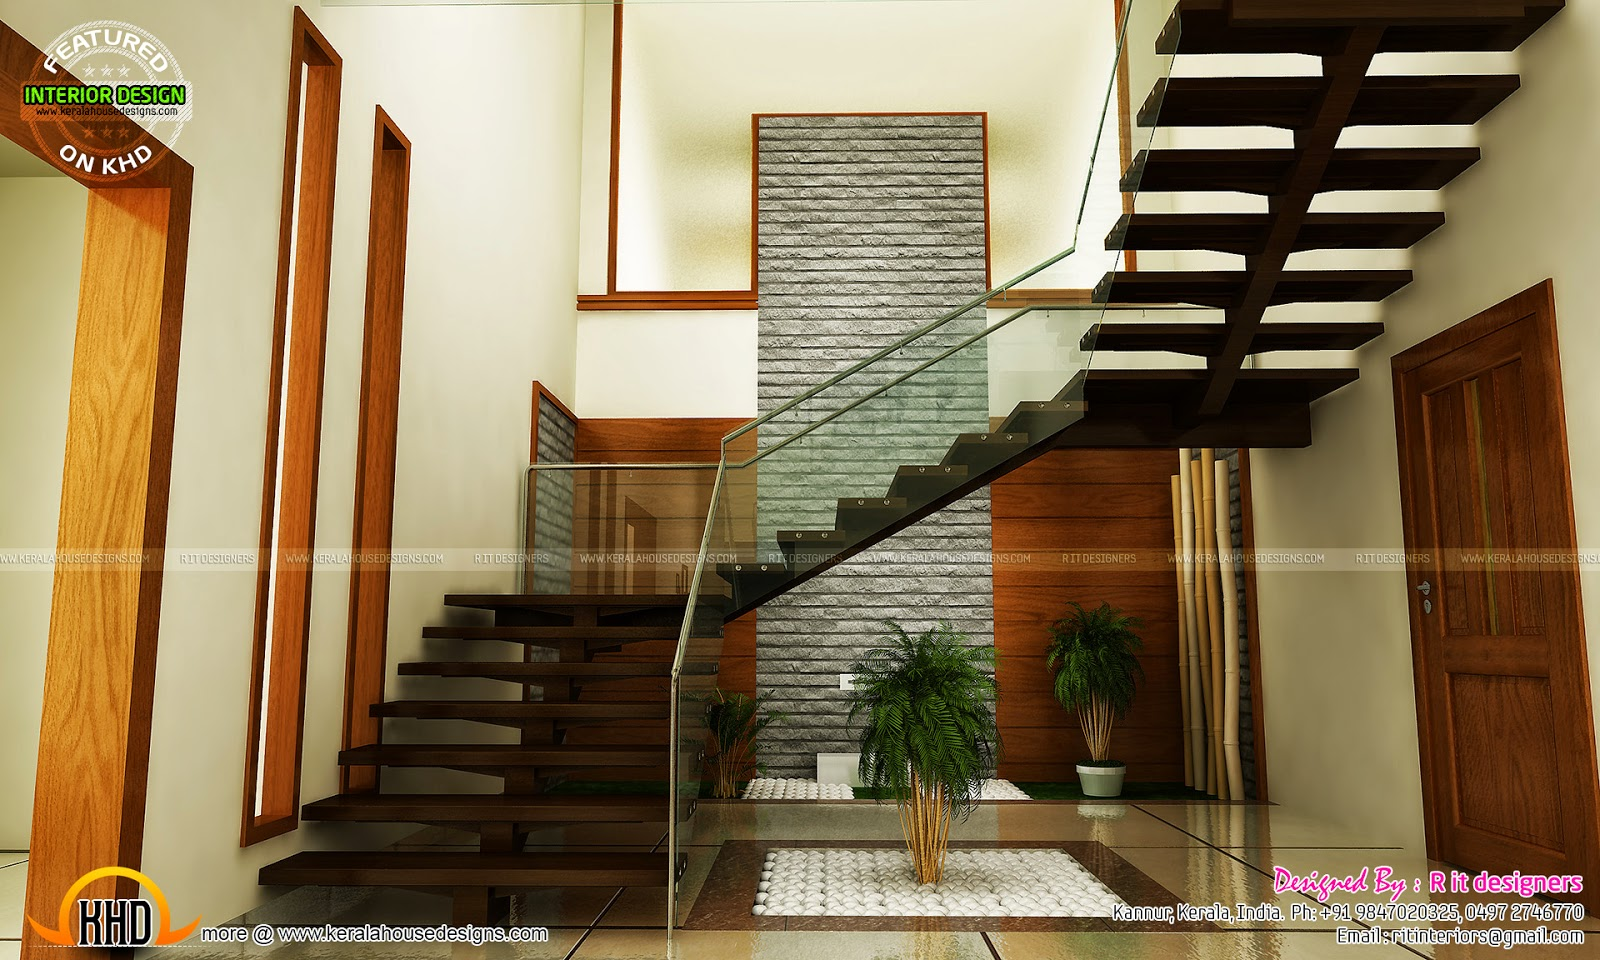 house plans in kerala style with photos with Staircase Bedroom Dining Interiors on 10287 furthermore Designs Houses Outlook also Nautilus Houseboats likewise Plan And Elevation likewise Simple Elevation House Plan In Below.